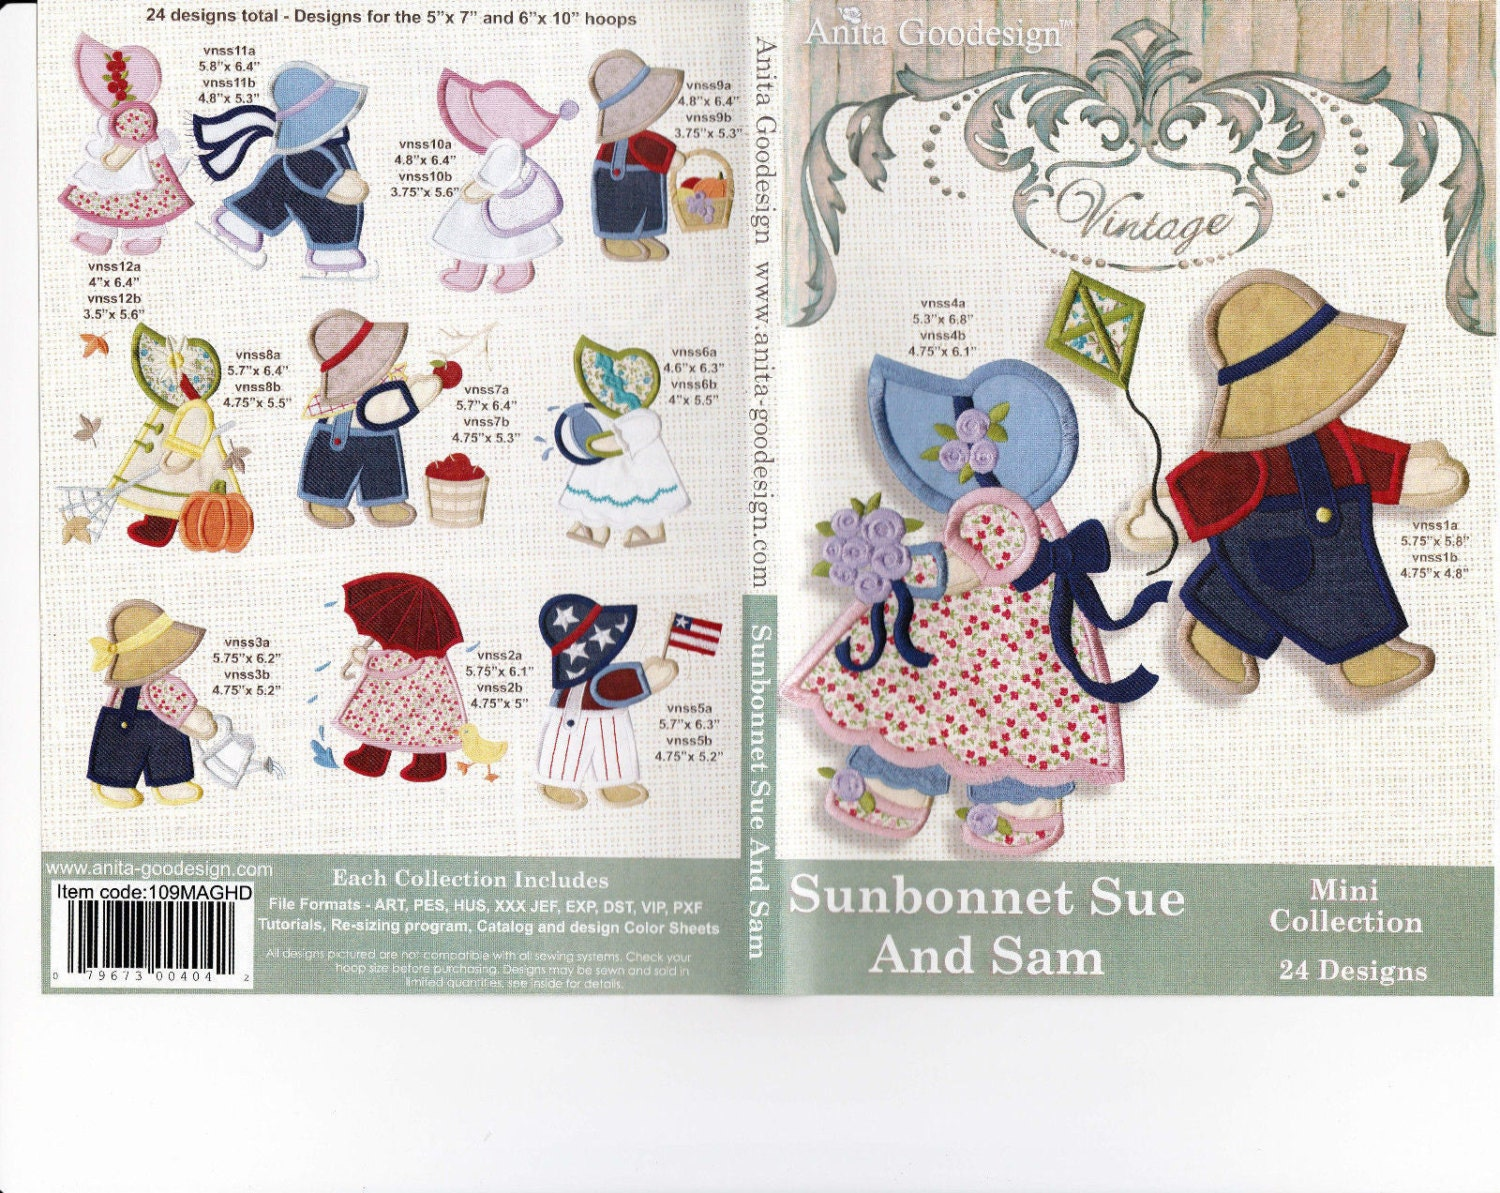 Sunbonnet Sue And Sam Embroidery Designs